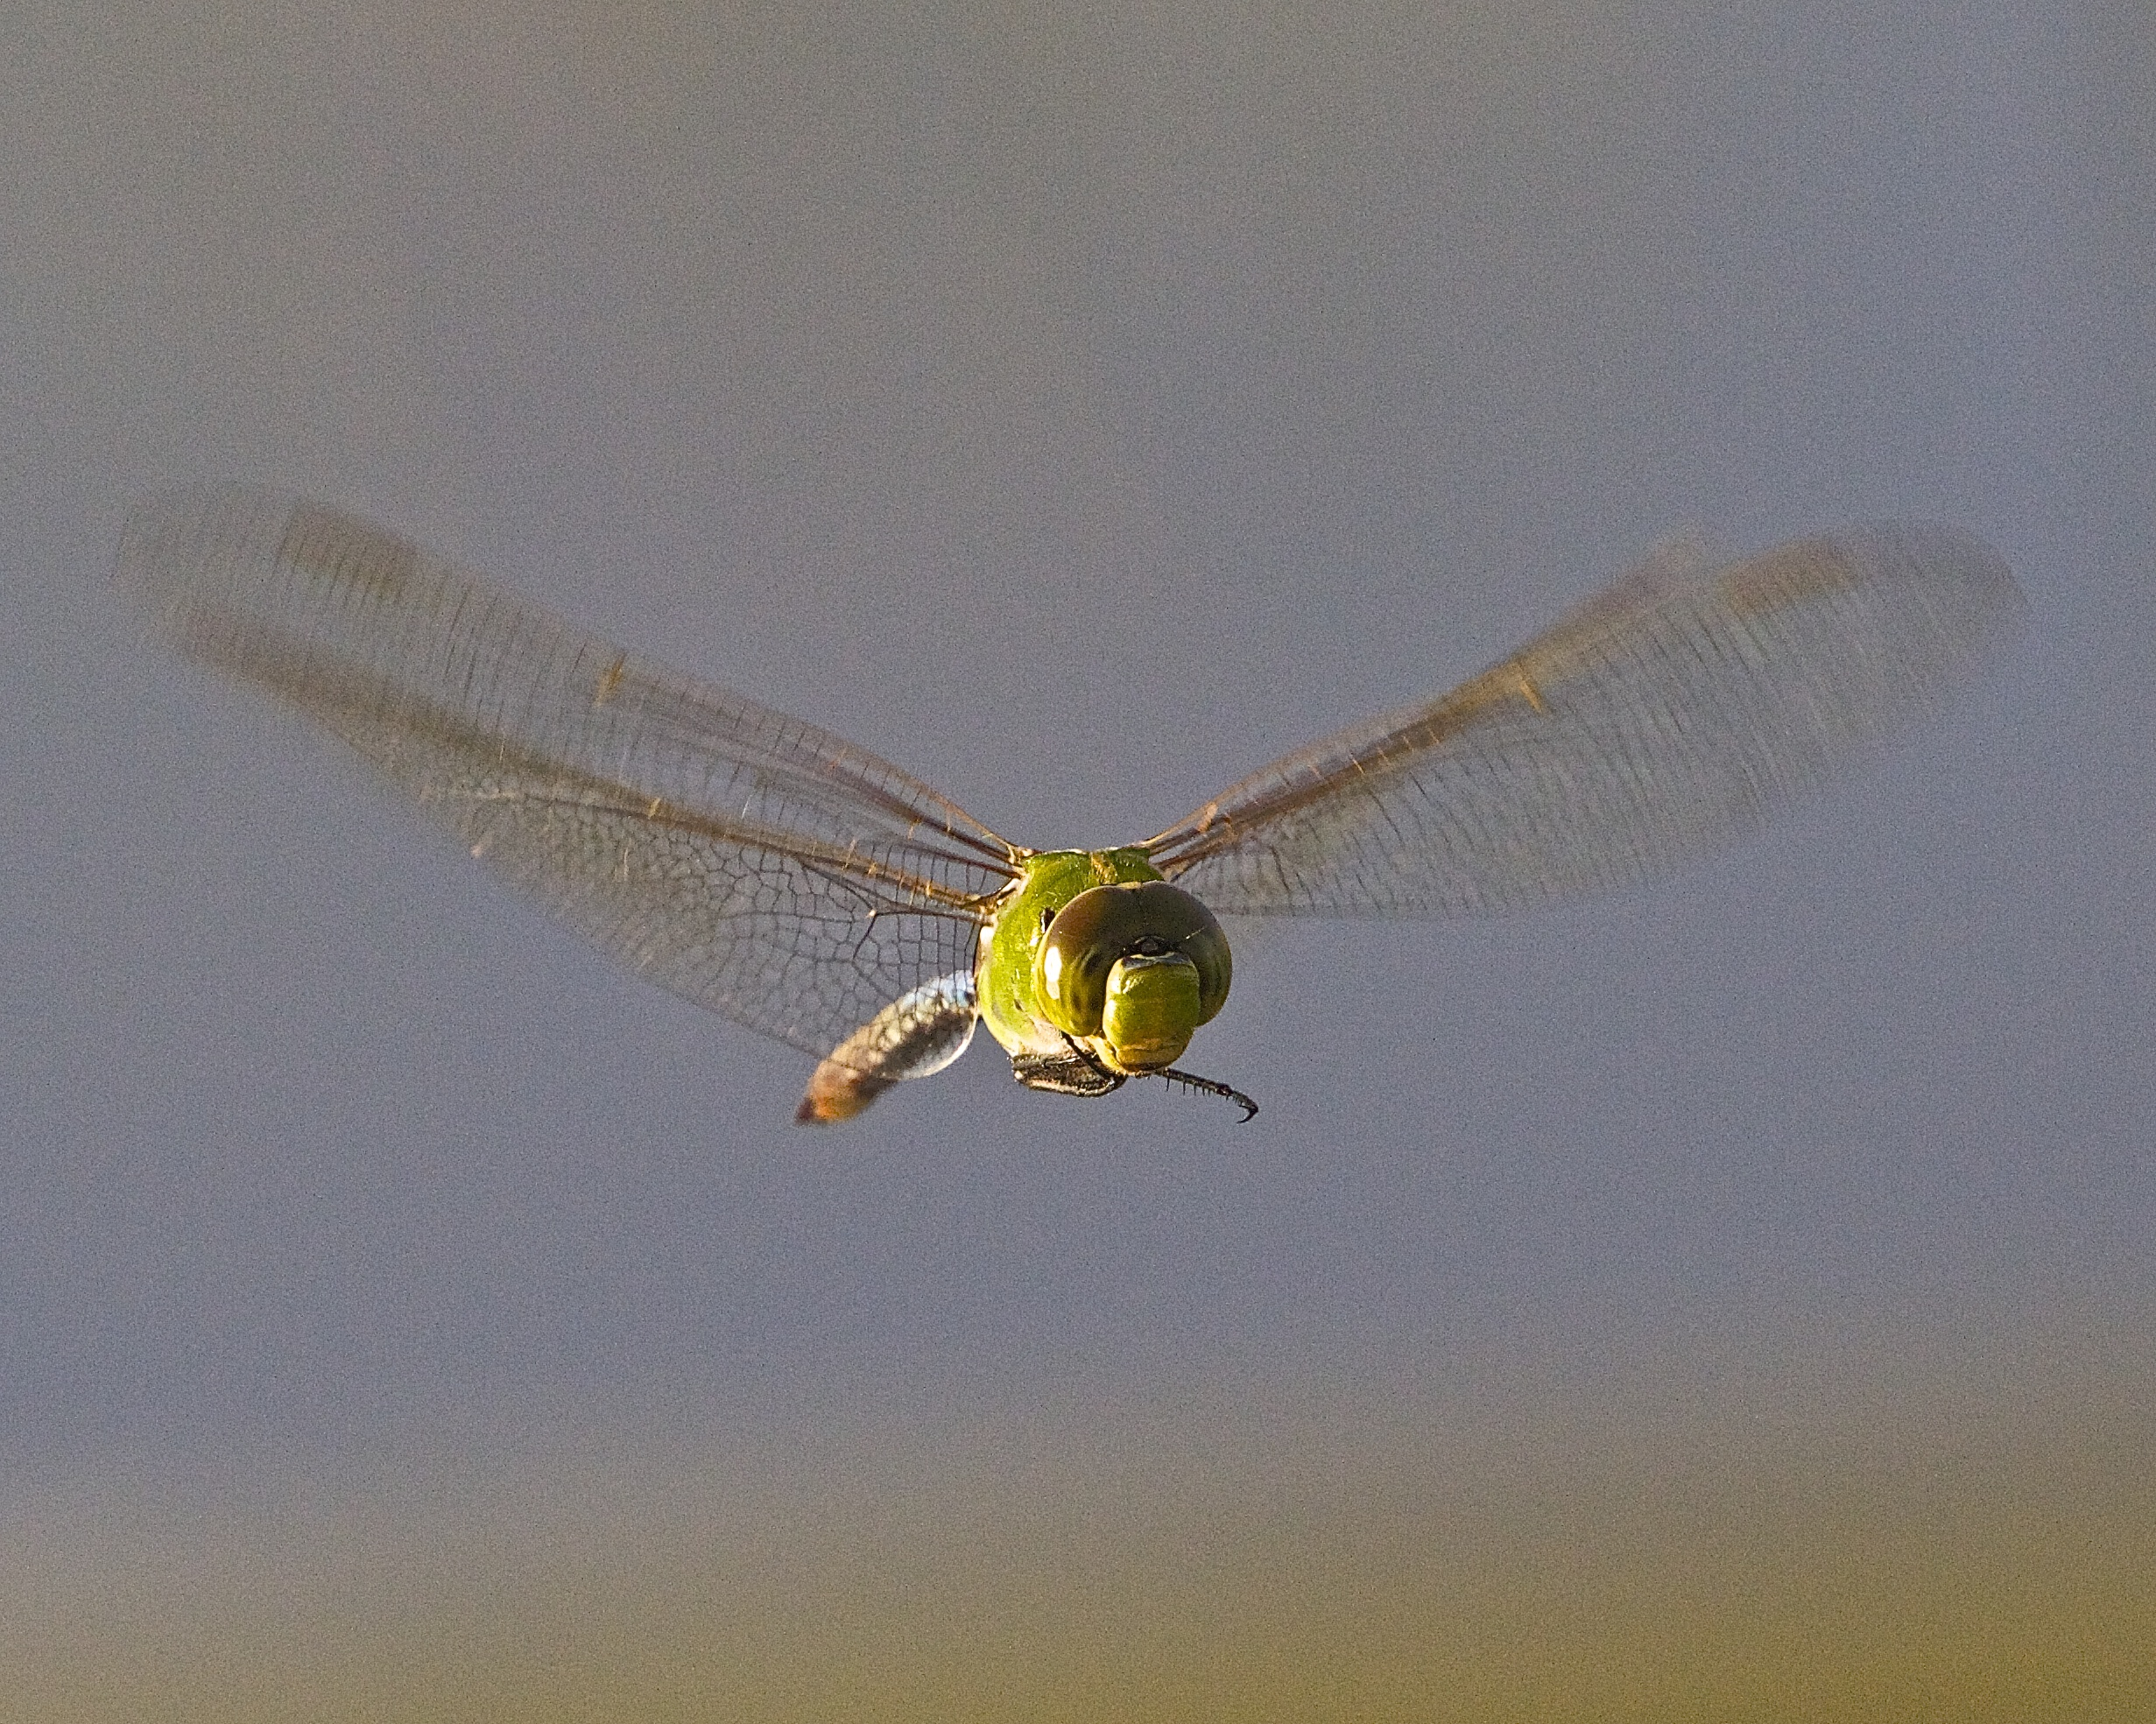 Bug eyed view of a Dragon Fly hovering over the dock.